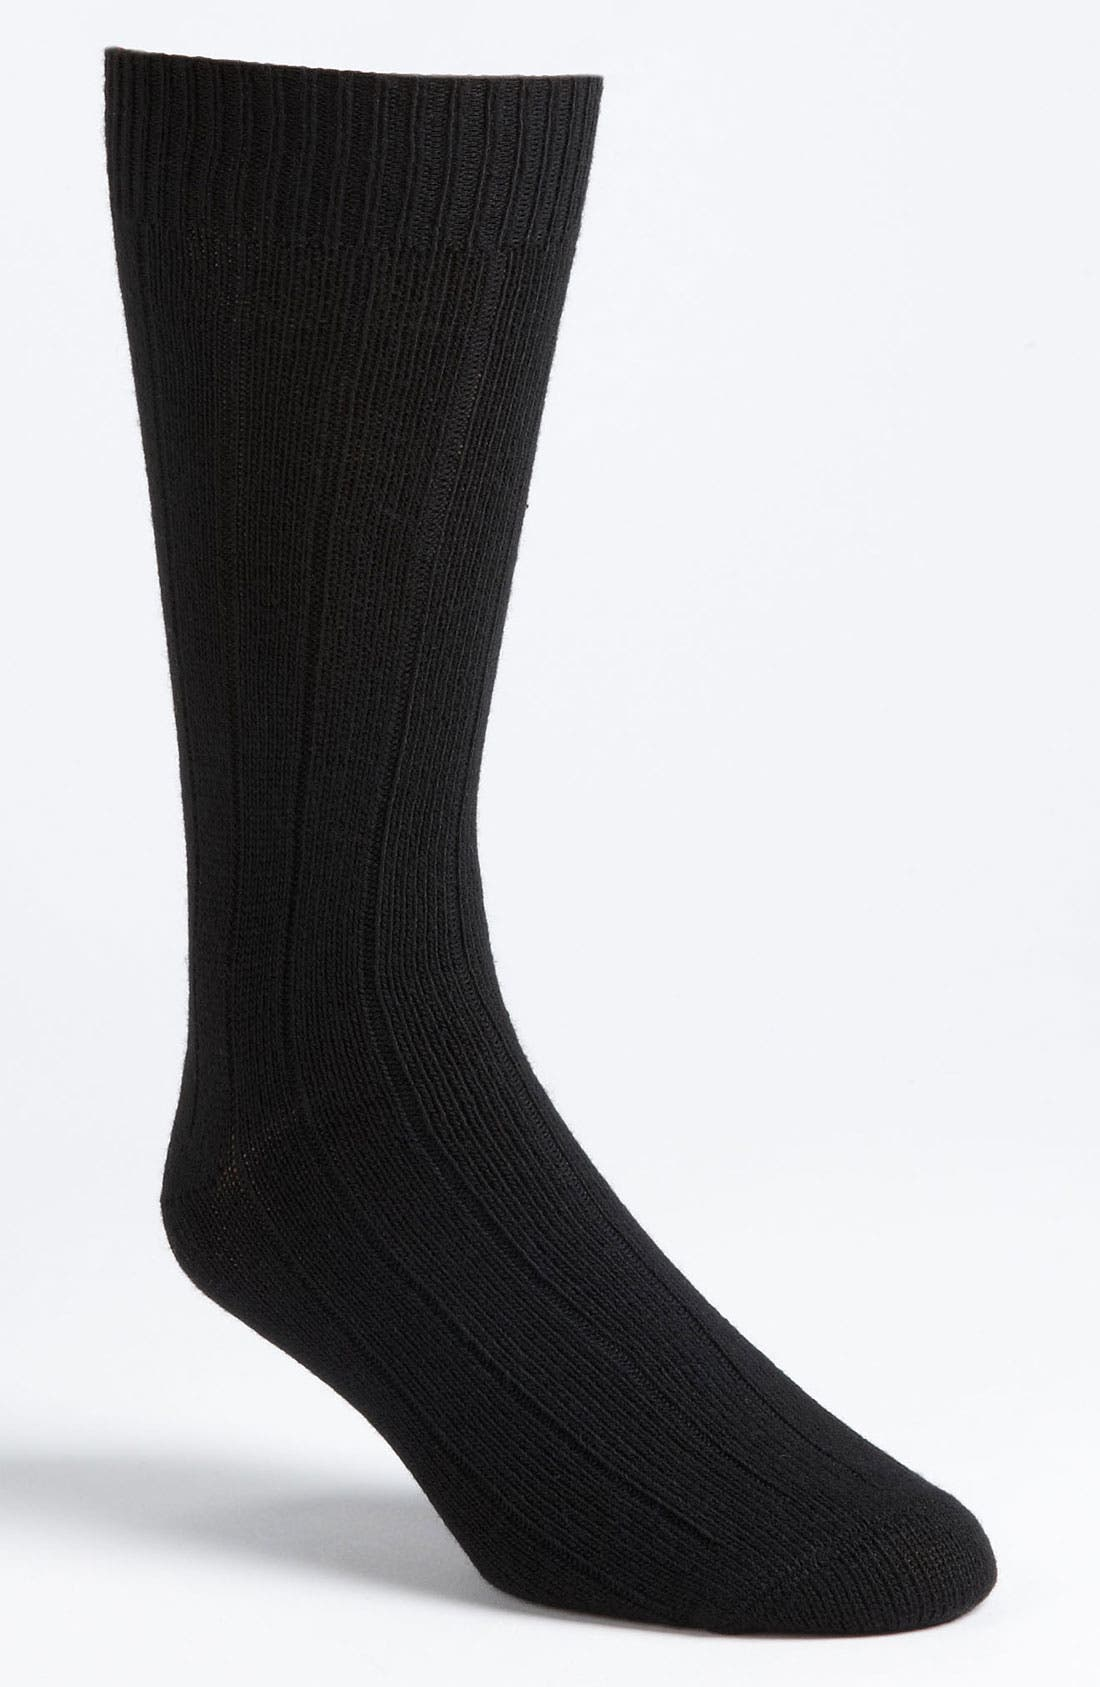 Alternate Image 1 Selected - Lorenzo Uomo Rib Socks